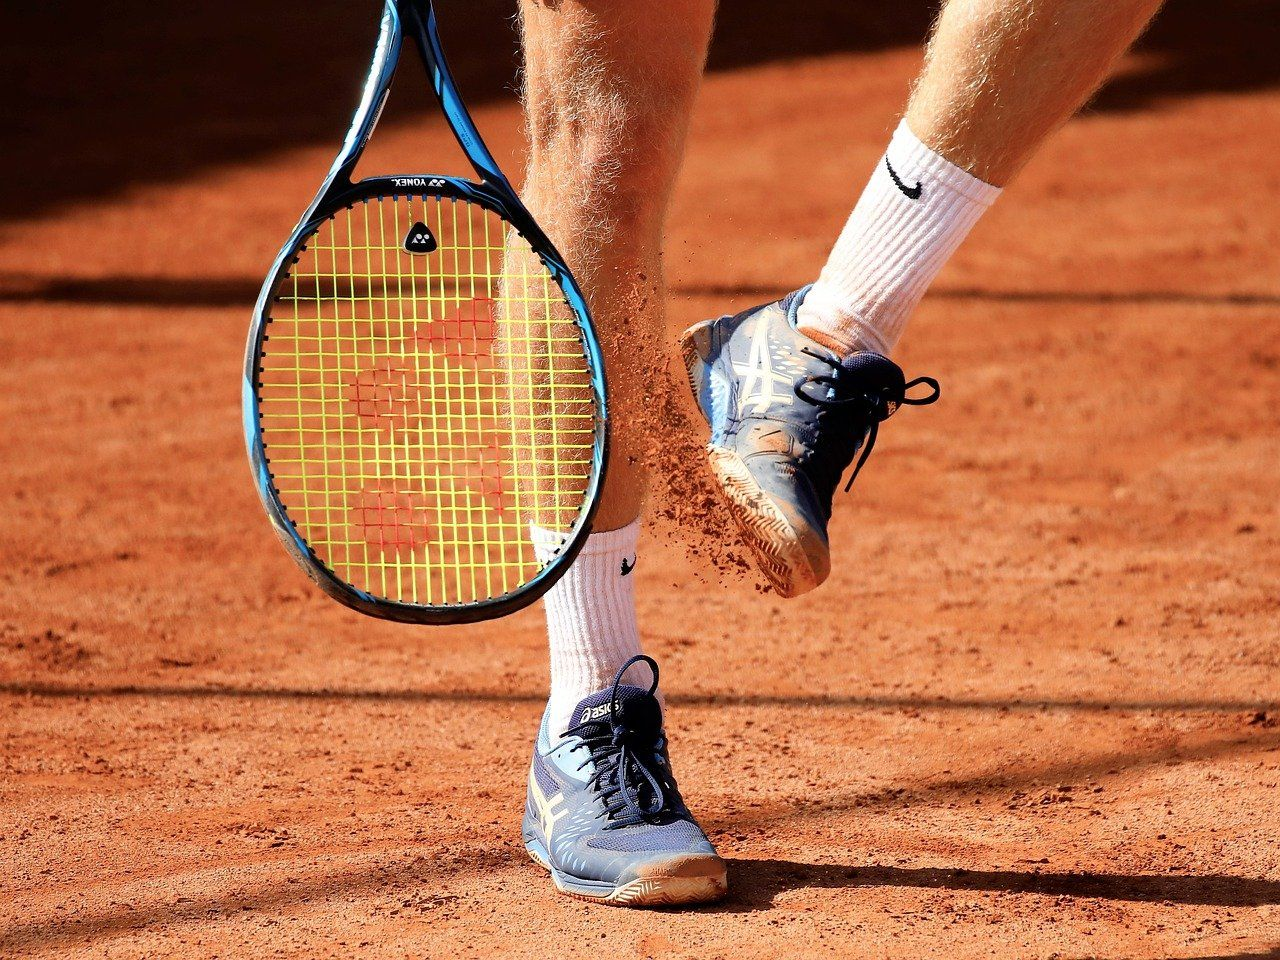 Top 5 best tennis shoes for men and women in 2021